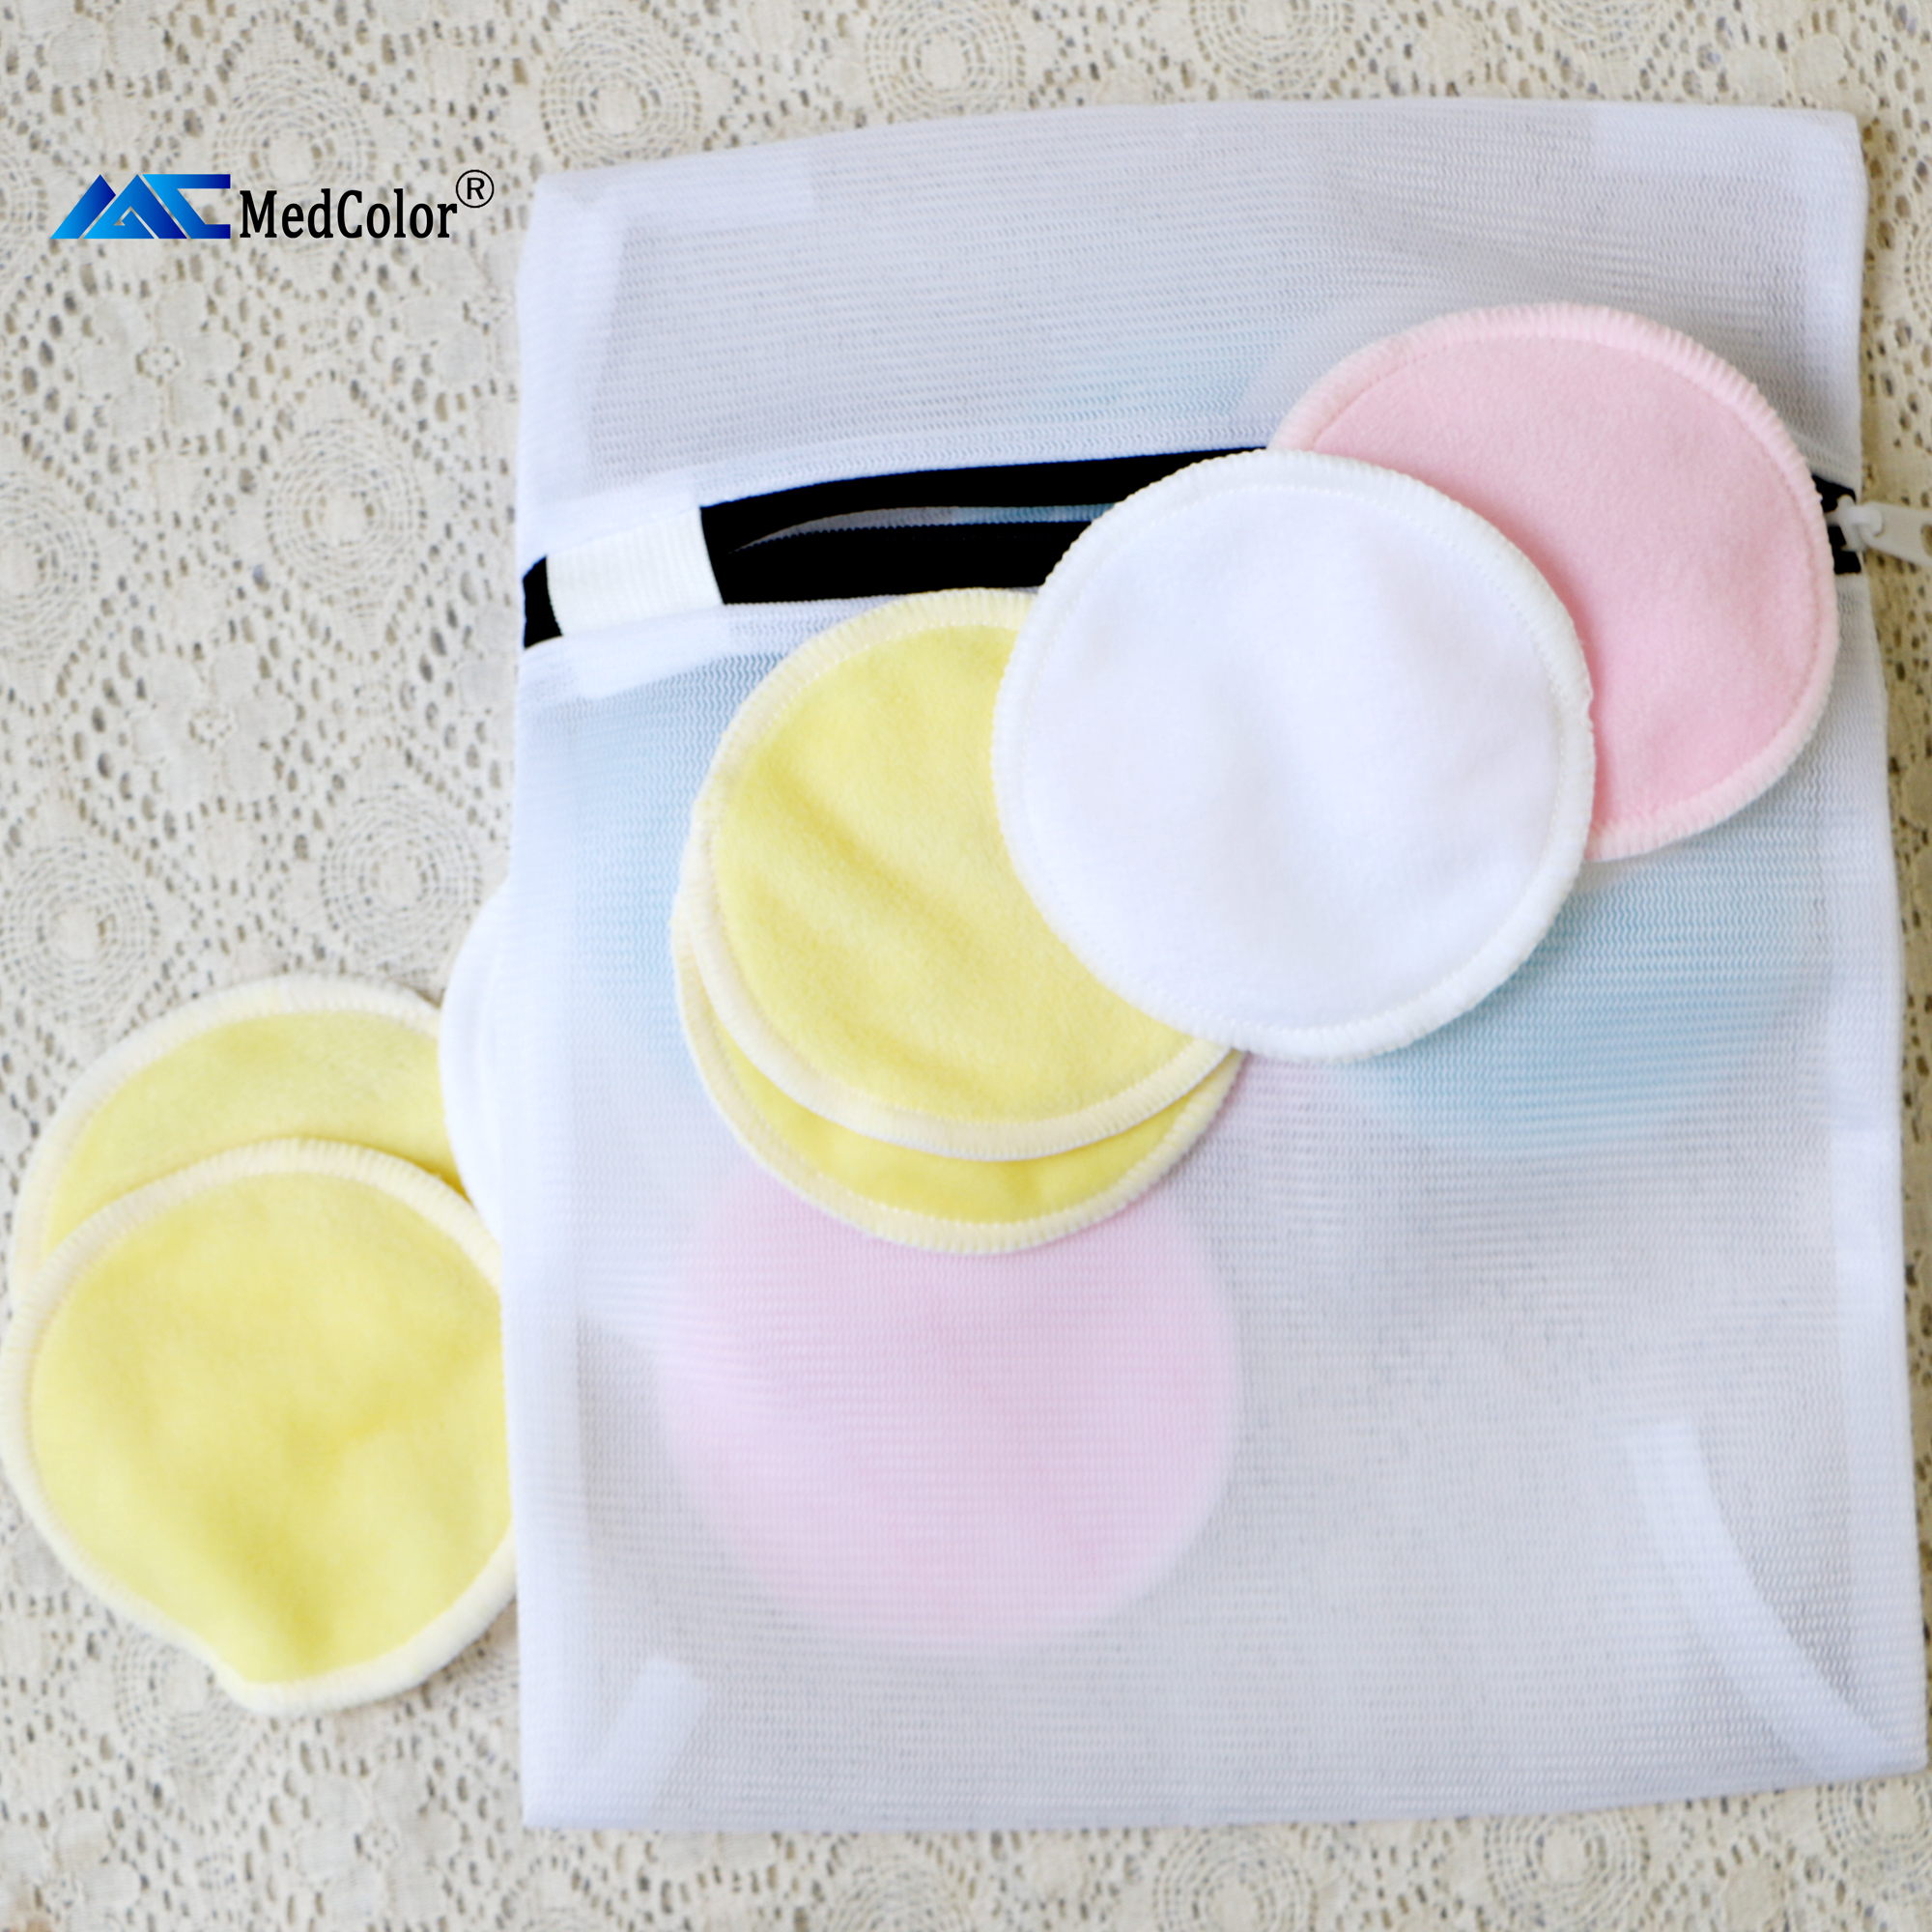 Hoge kwaliteit ronde bamboe katoen herbruikbare make-up remover pad wasbare facial cleaning pad